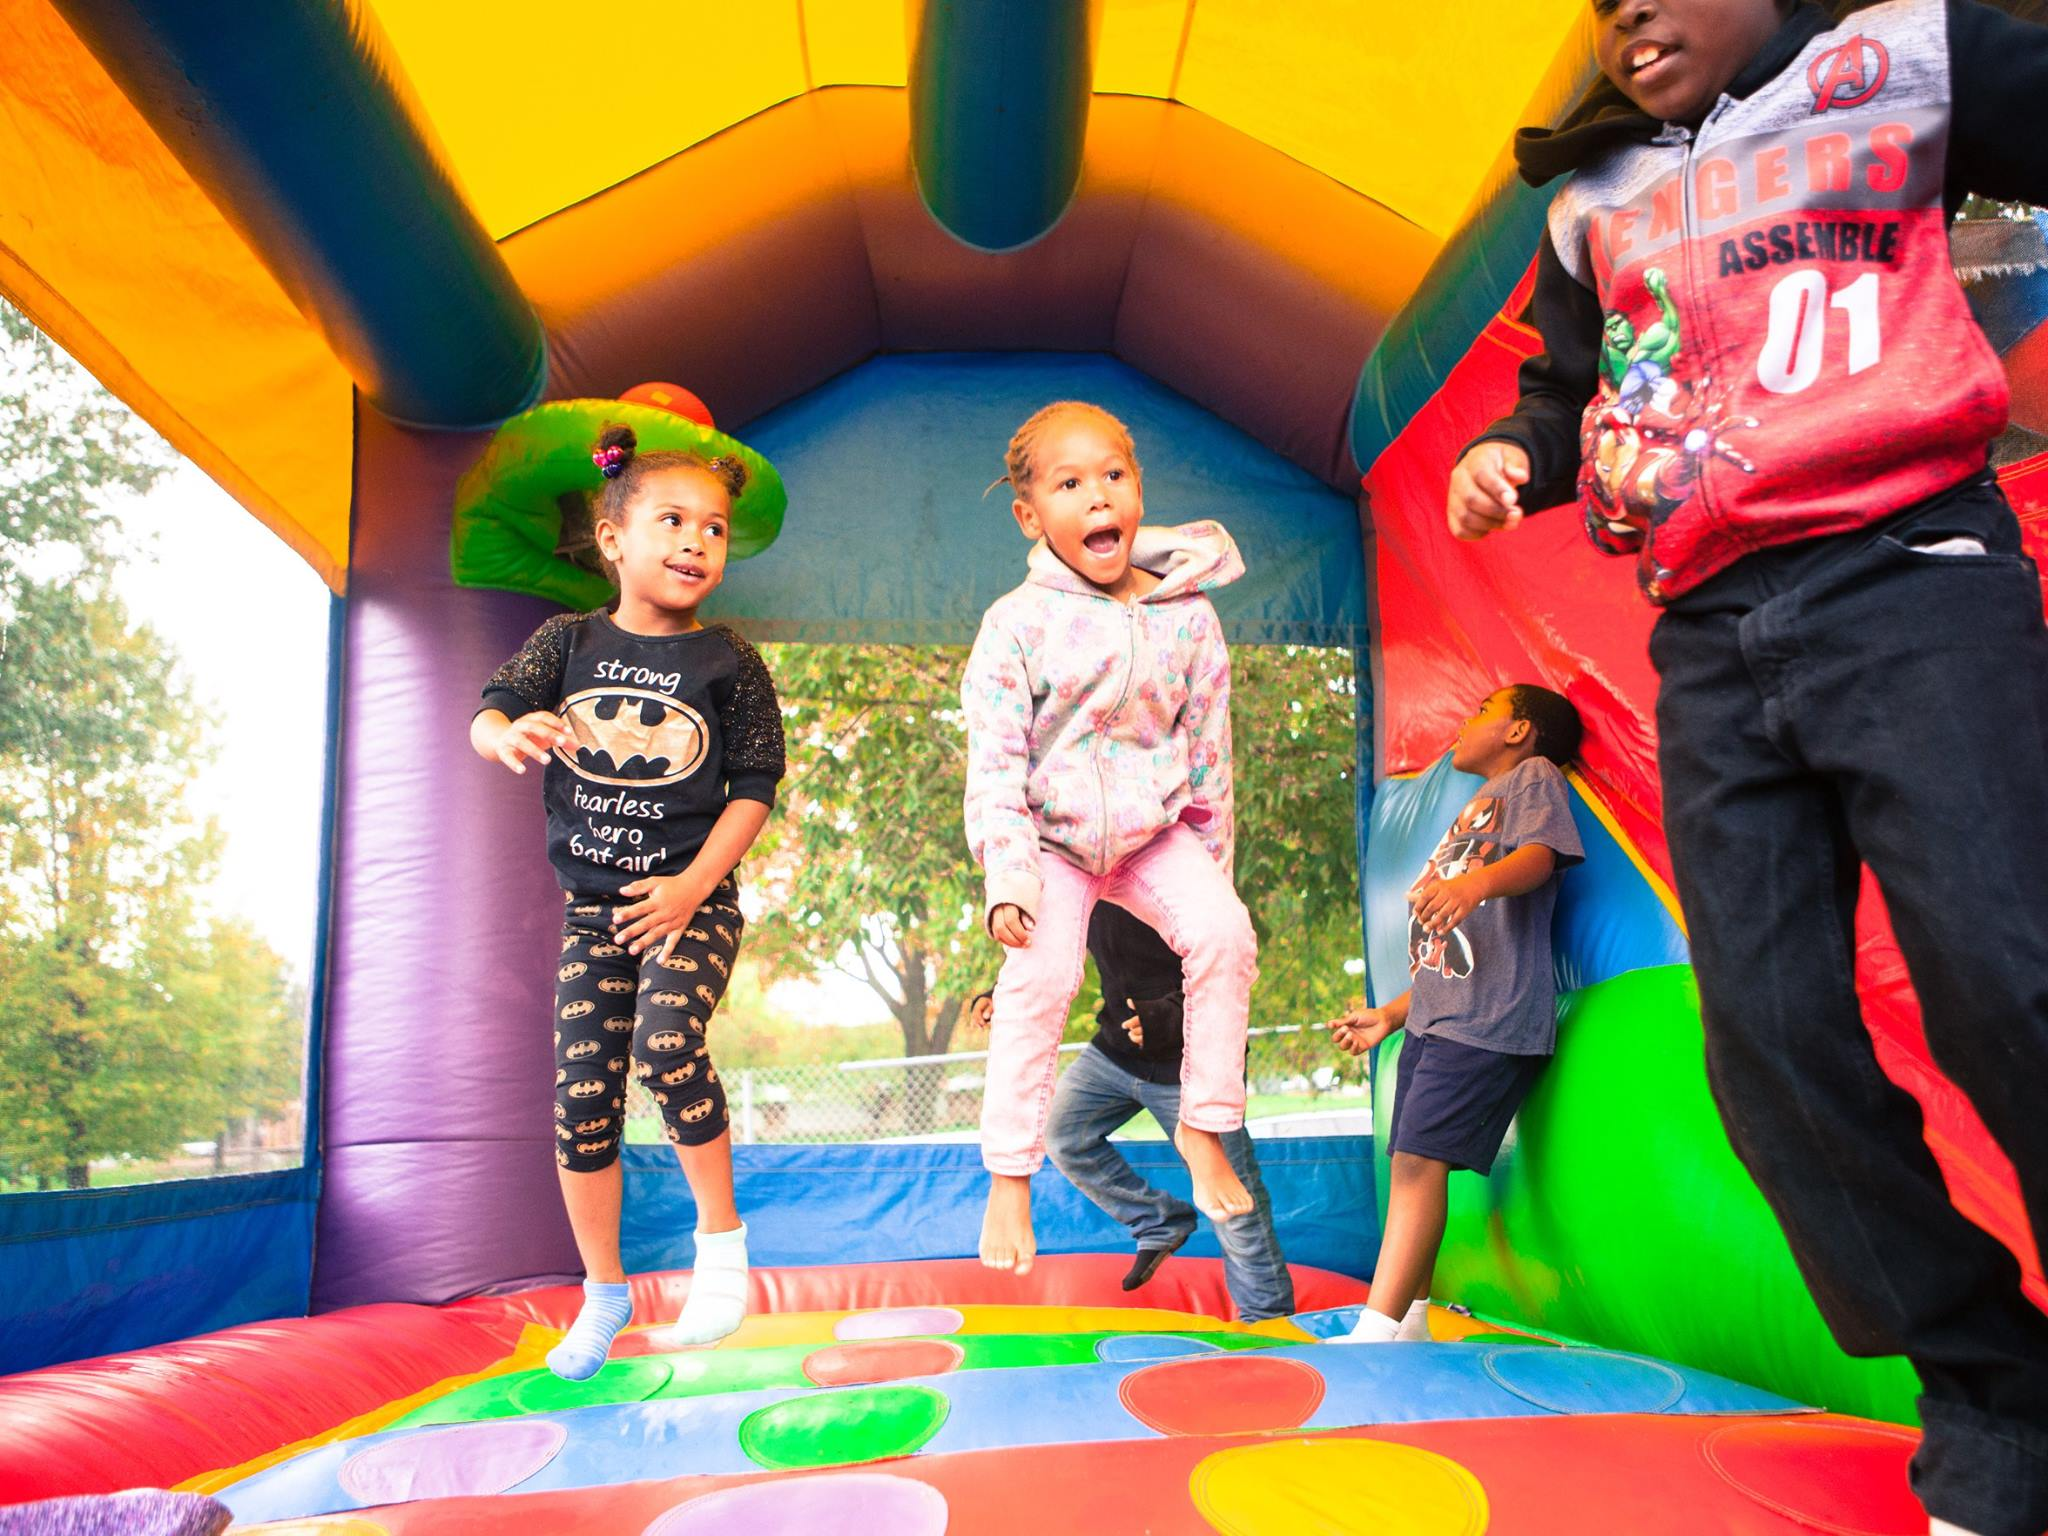 A group of children joyfully jumping in a colorful bounce house.